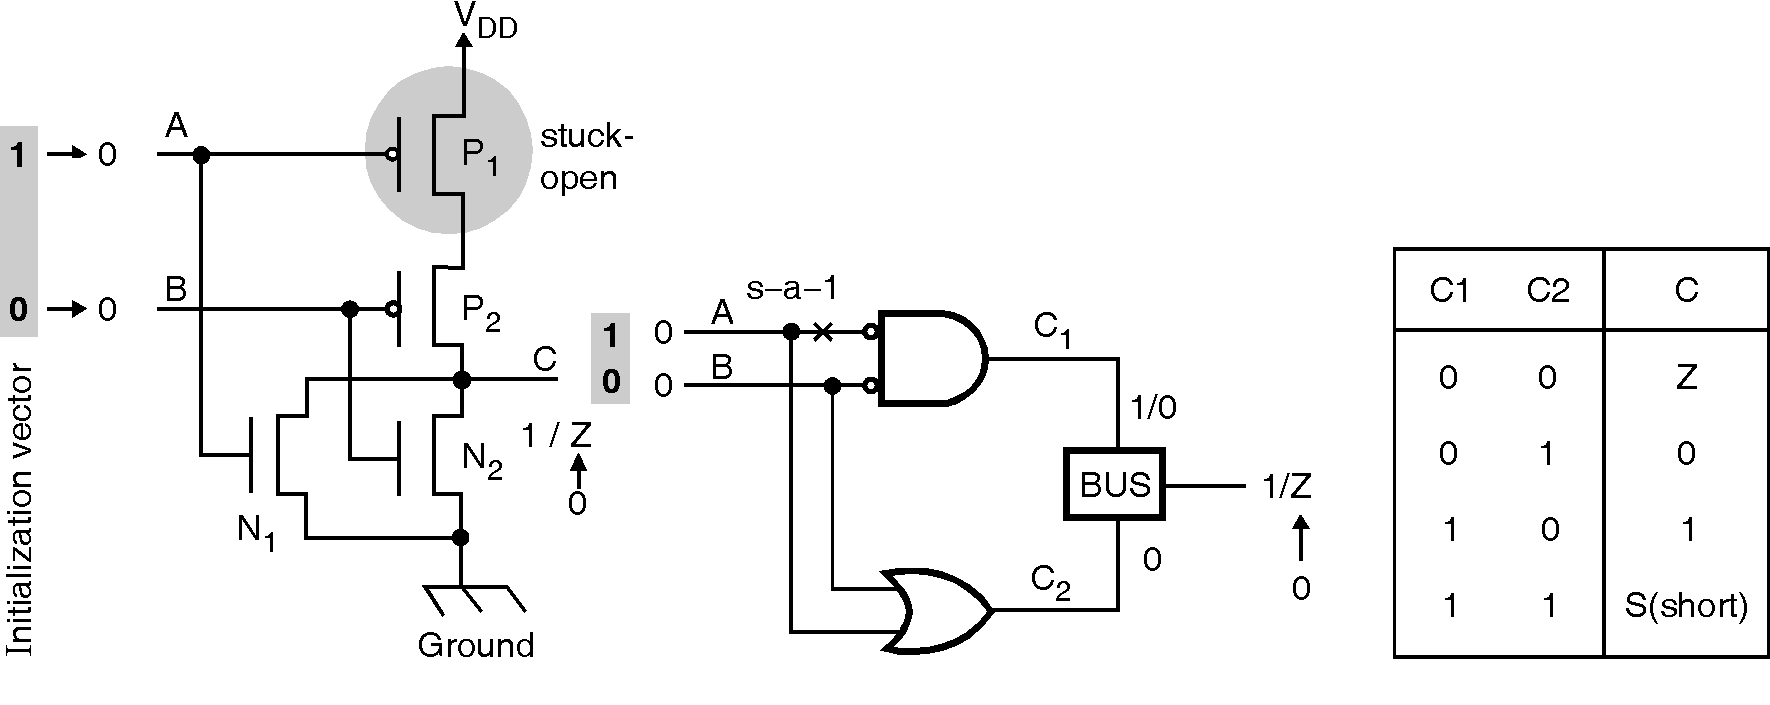 Vlsi Electronic Locks Circuits And Tutorials This Circuit Can Be Used To Digital Mos The Simple Model Of Transistor Is Useful A As Switch Defect Modeled Being Permanently In